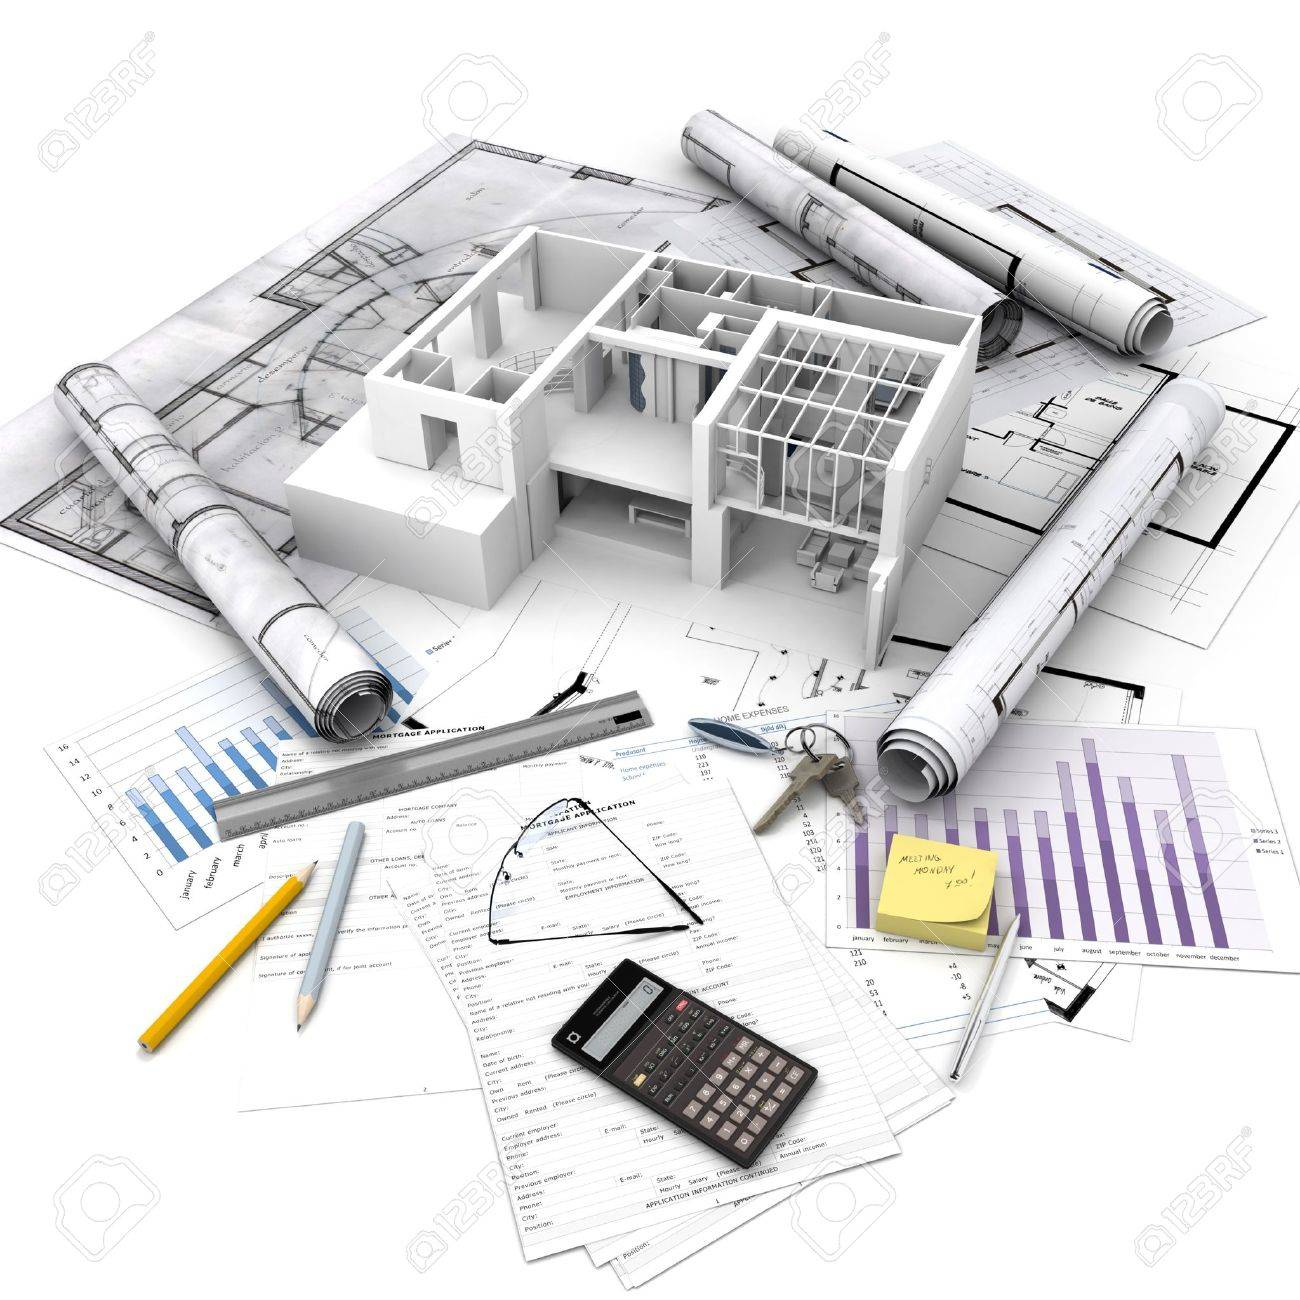 office building blueprints. Contemporary Blueprints Office Building With Open Interior On Top Of Blueprints Documents And  Mortgage Calculations Stock Photo And Building Blueprints